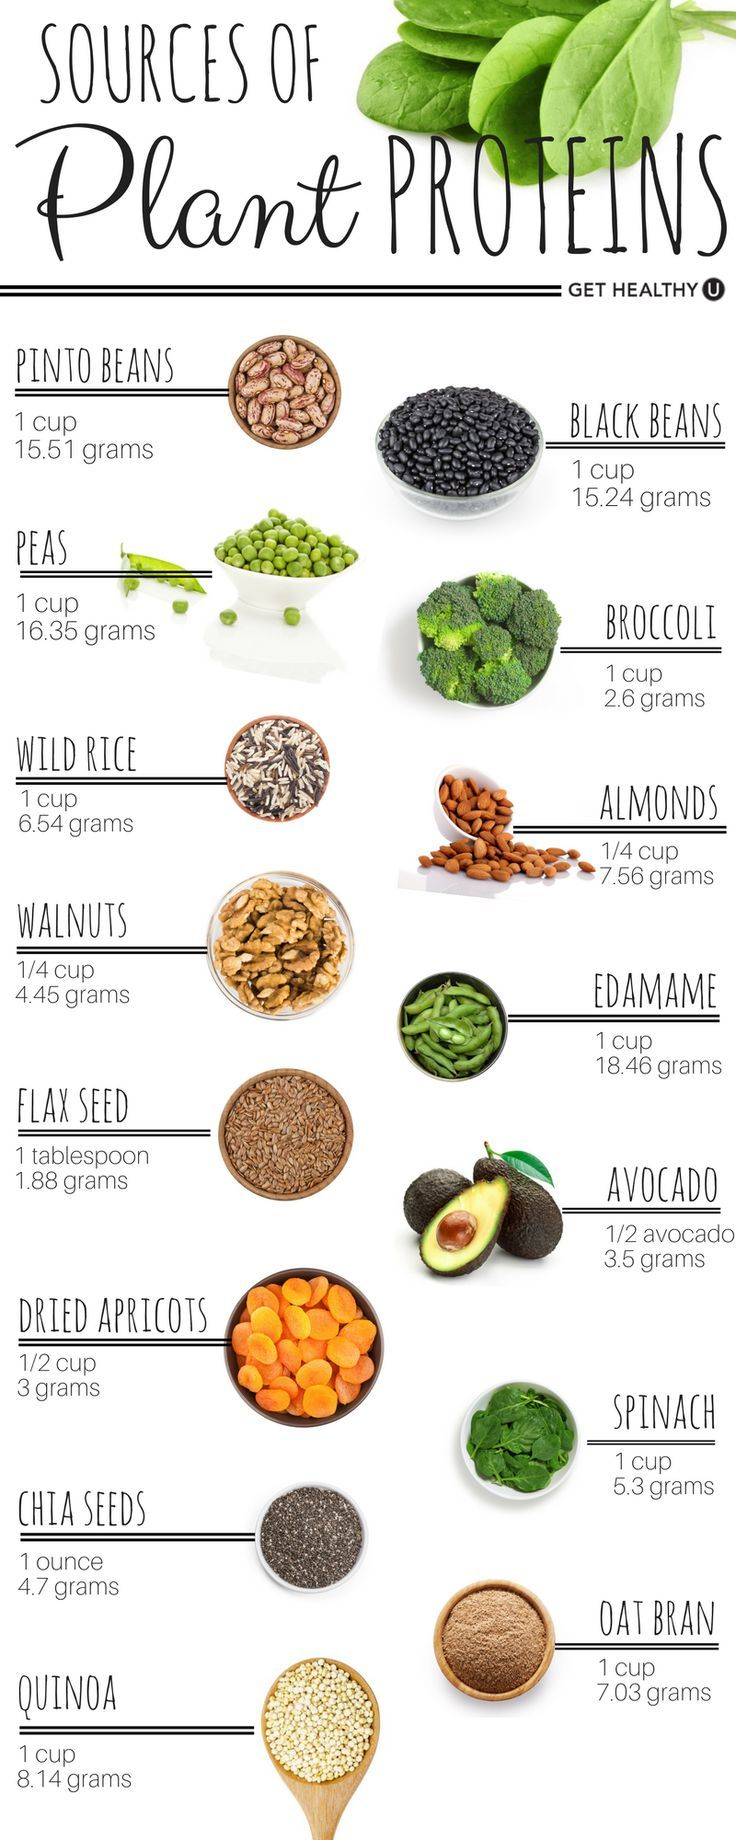 Check out all these awesome sources of plant protein.